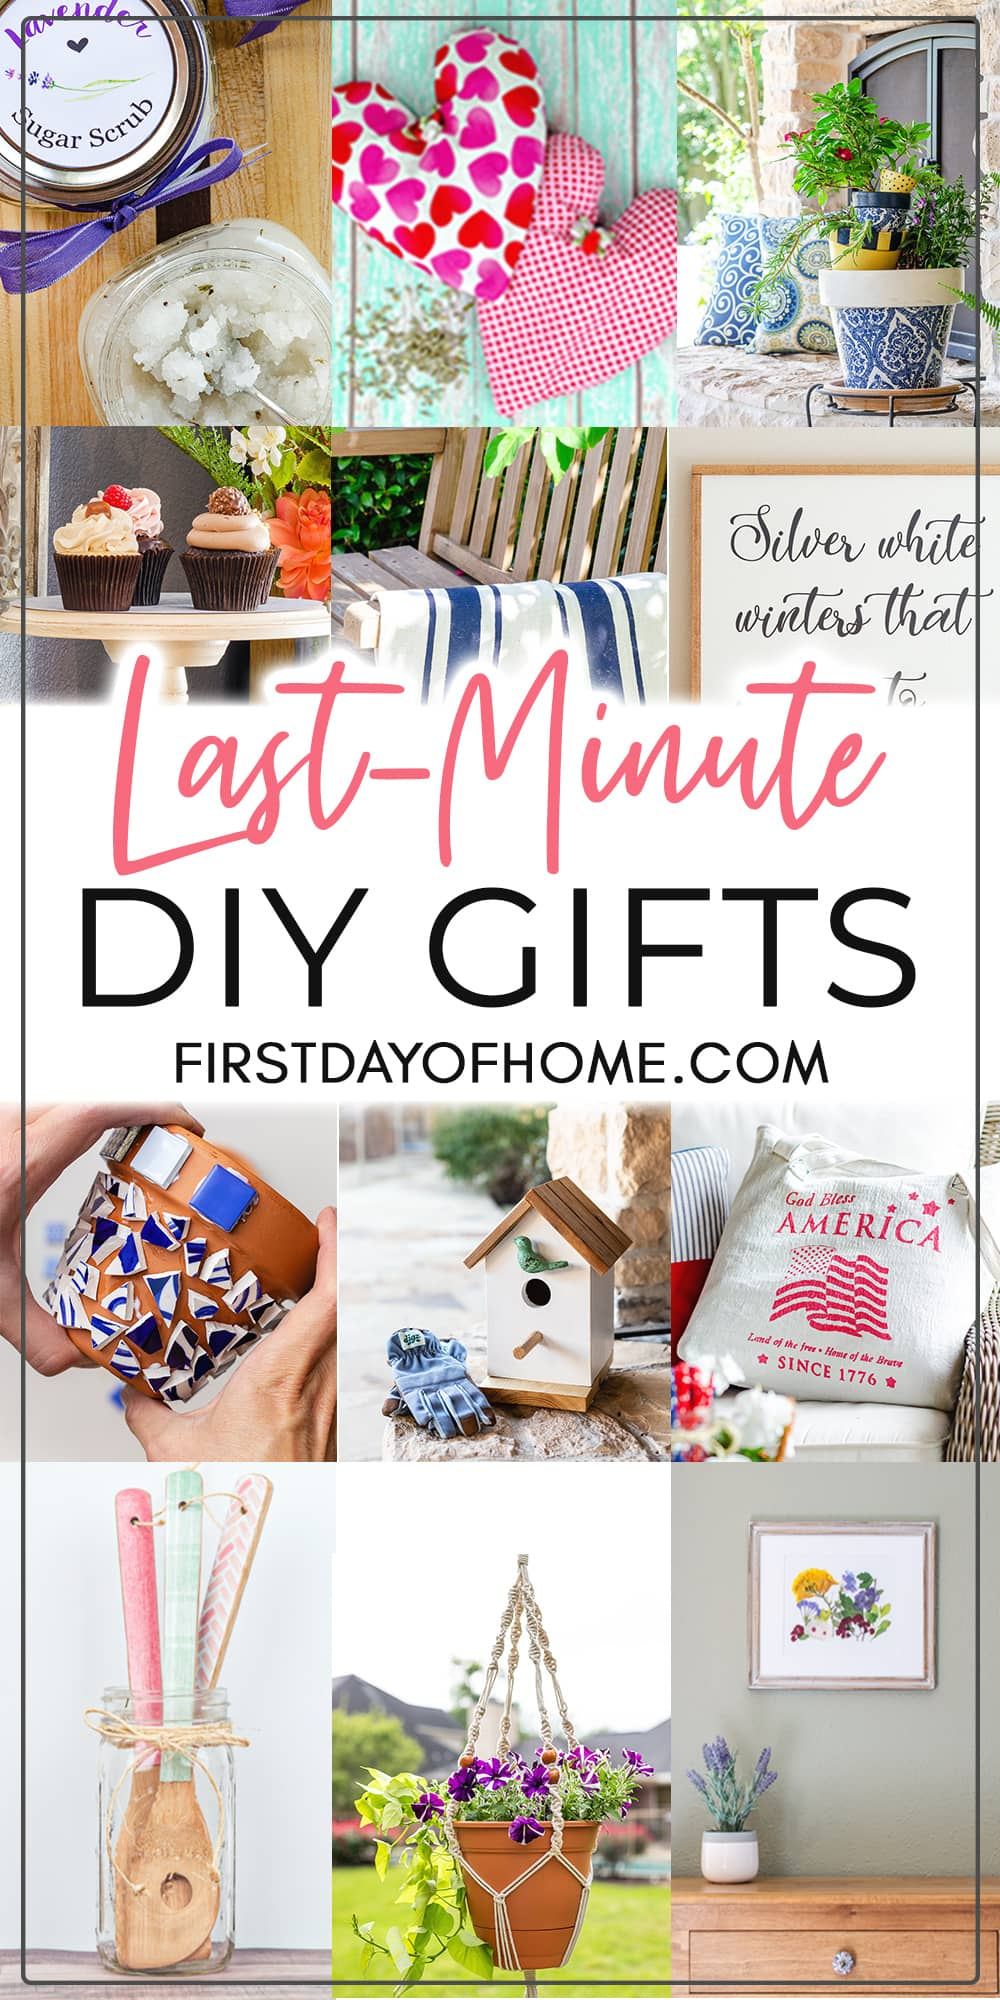 """Images of various craft projects and DIY projects with text overlay reading """"Last-Minute DIY Gifts"""""""